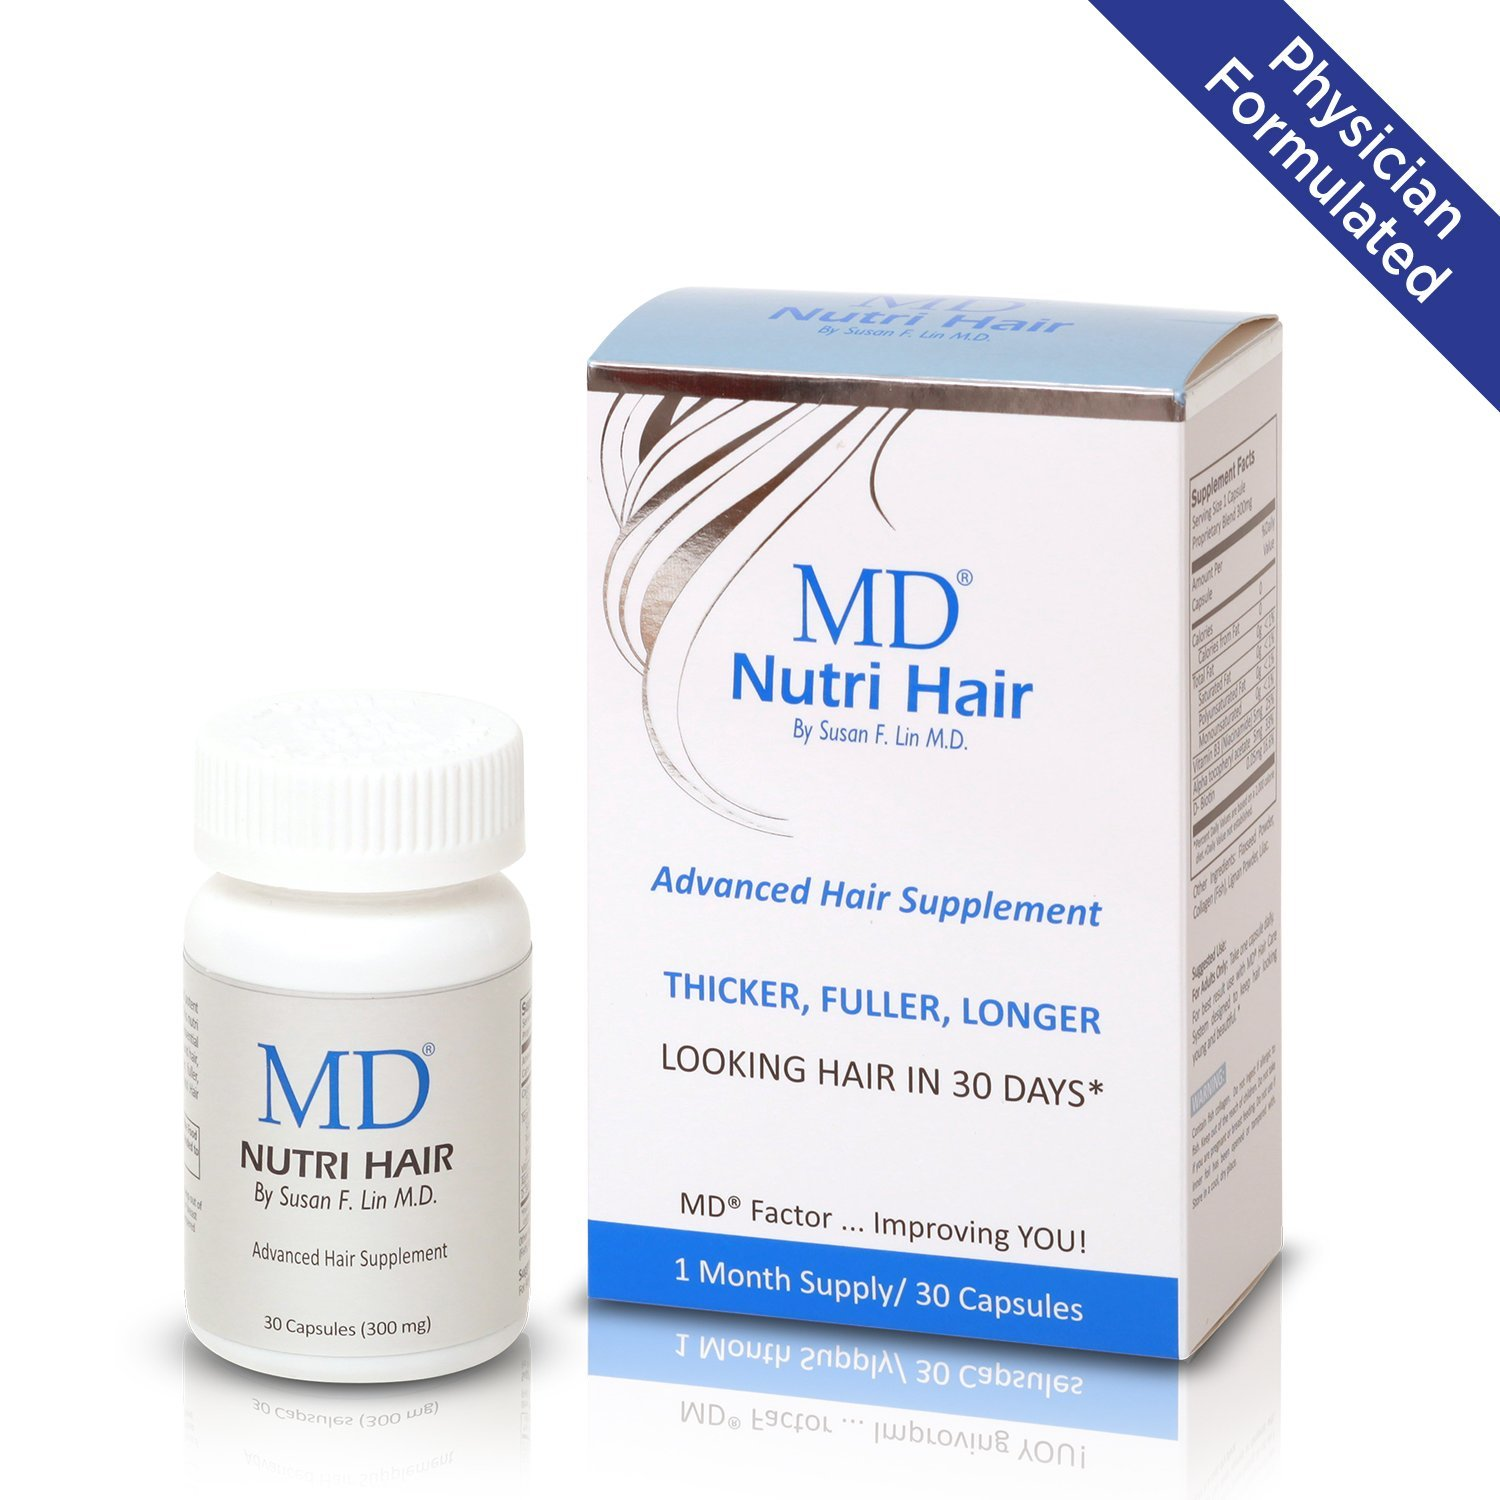 MD Nutri Hair Growth Supplement with Biotin (30 Capsules) | Prevents Hair Loss, Minimizes Hair Shedding, Thinning, Breakage & Promotes Longer, Thicker Hair|Skin-Safe & Natural Formulation by MD